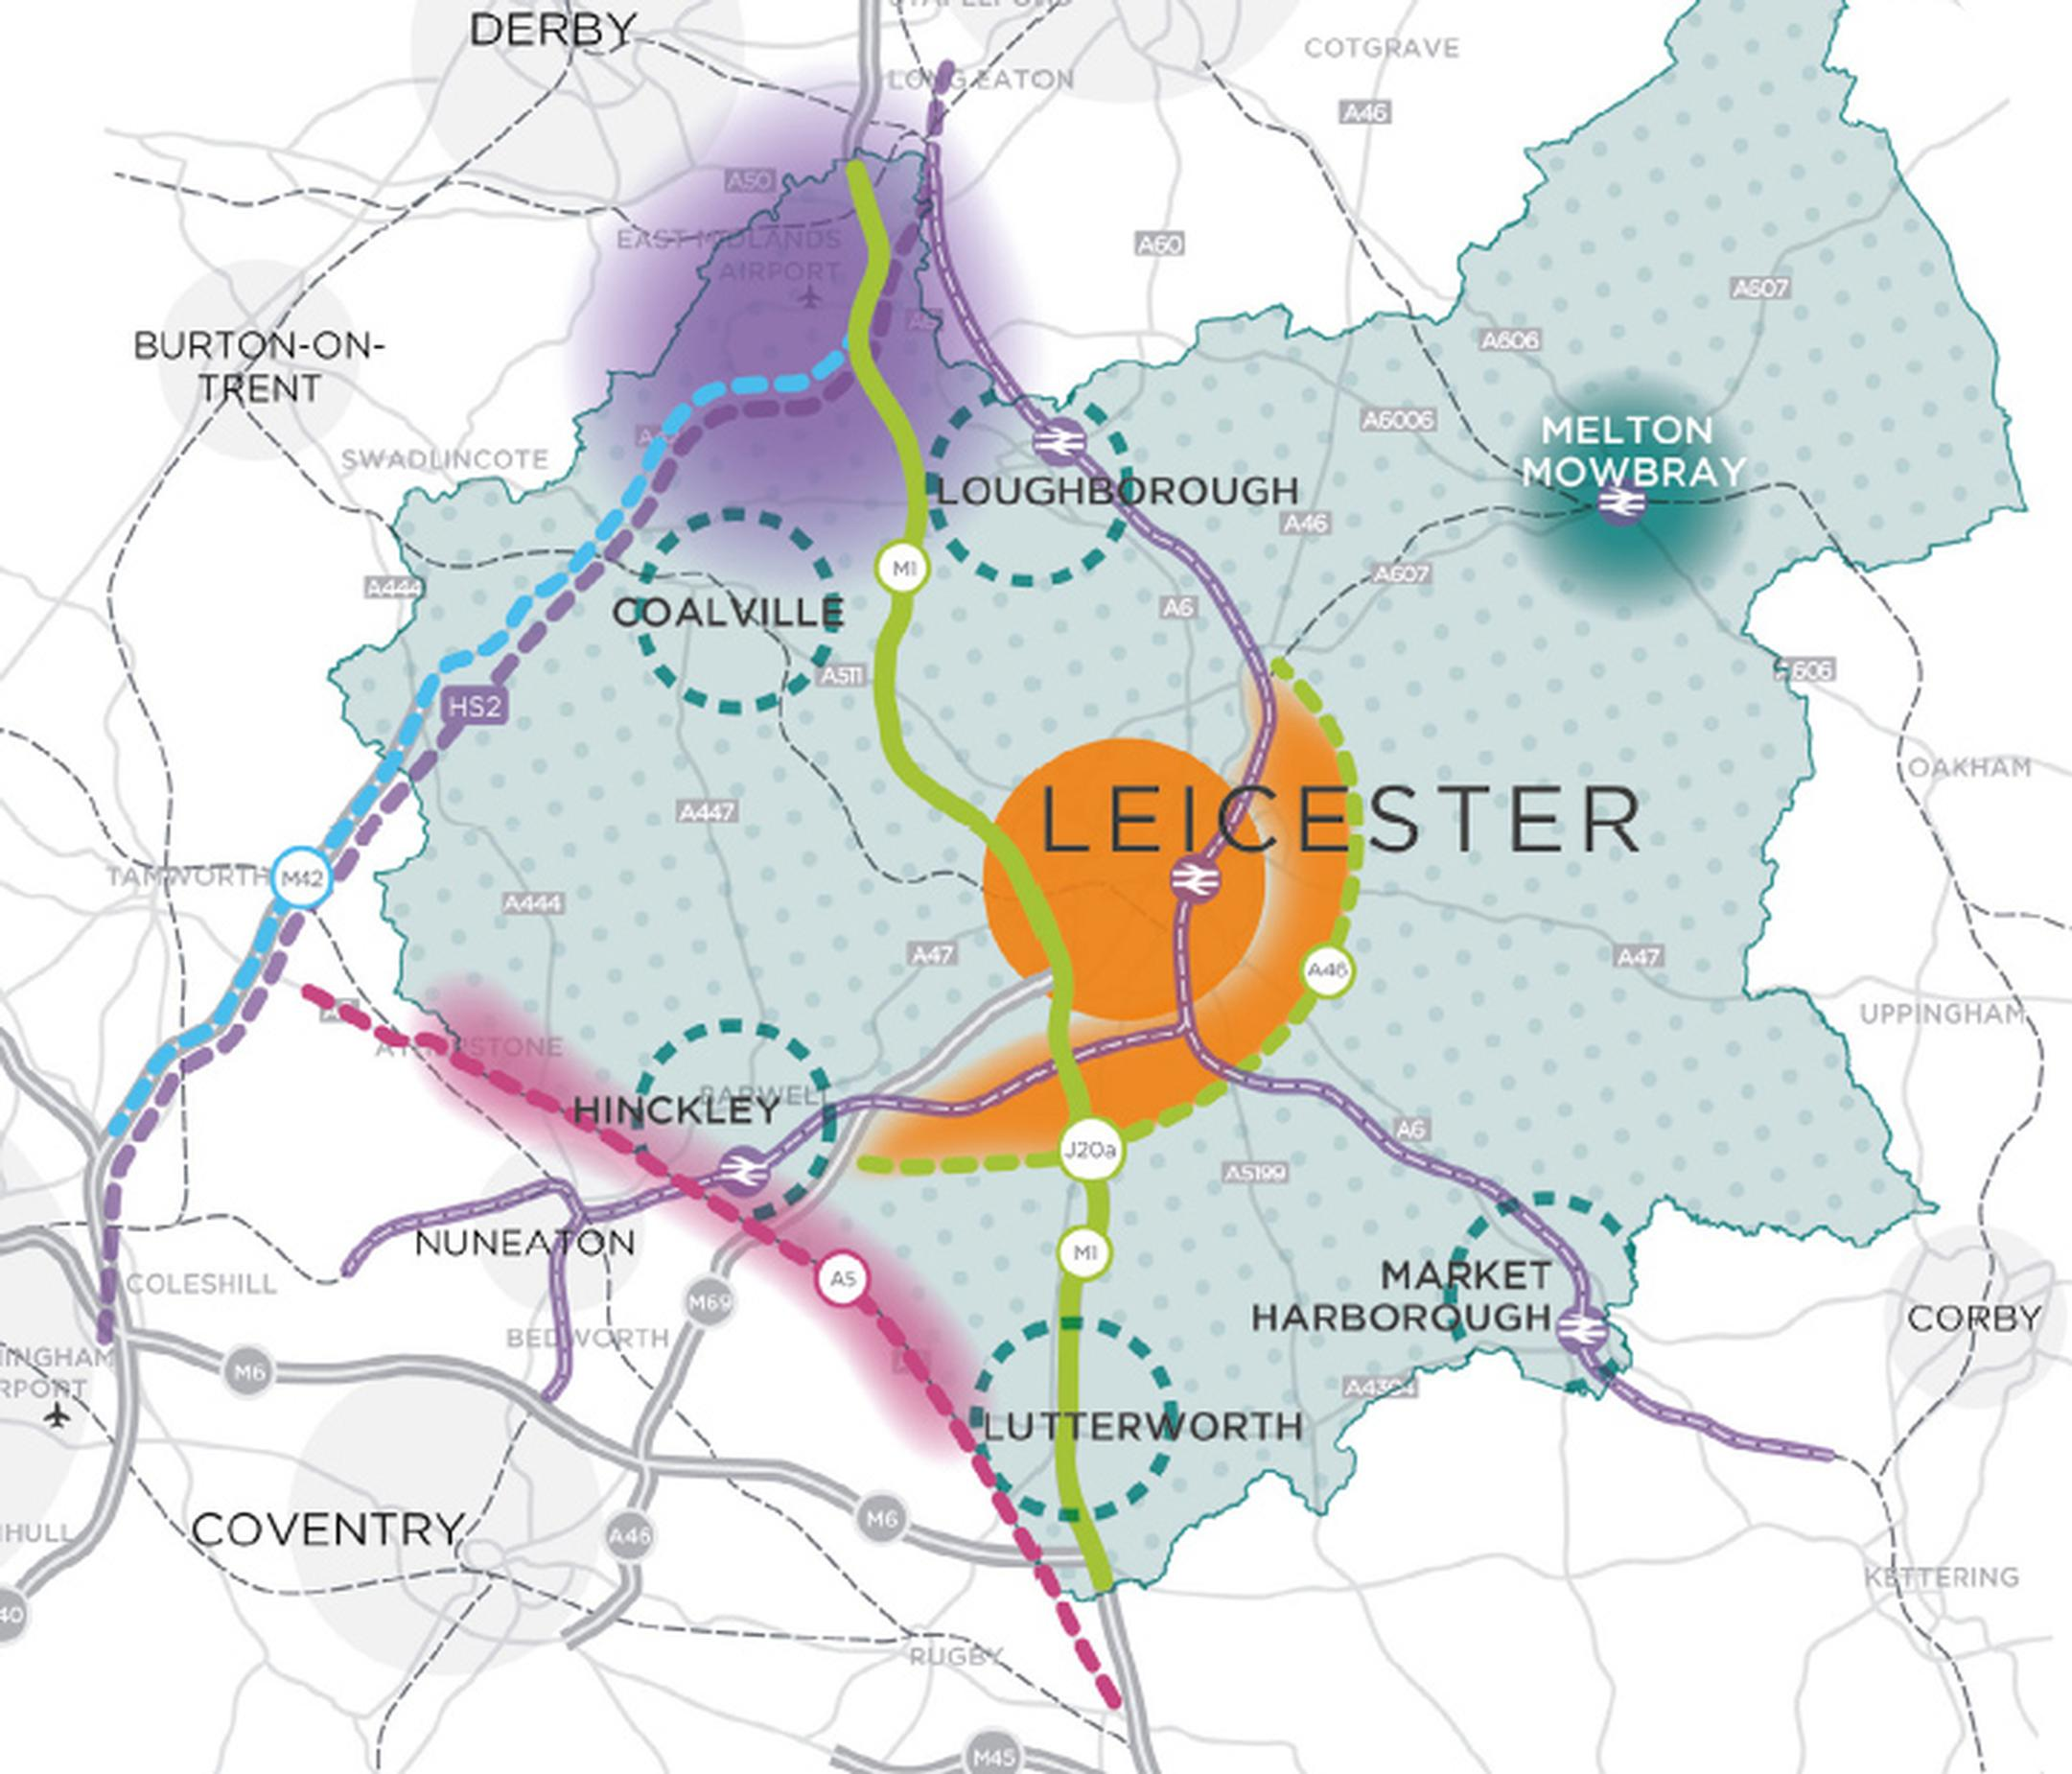 The strategic growth plan identifies growth opportunities tied to a new A46 road round the south and east of Leicester, and the A5